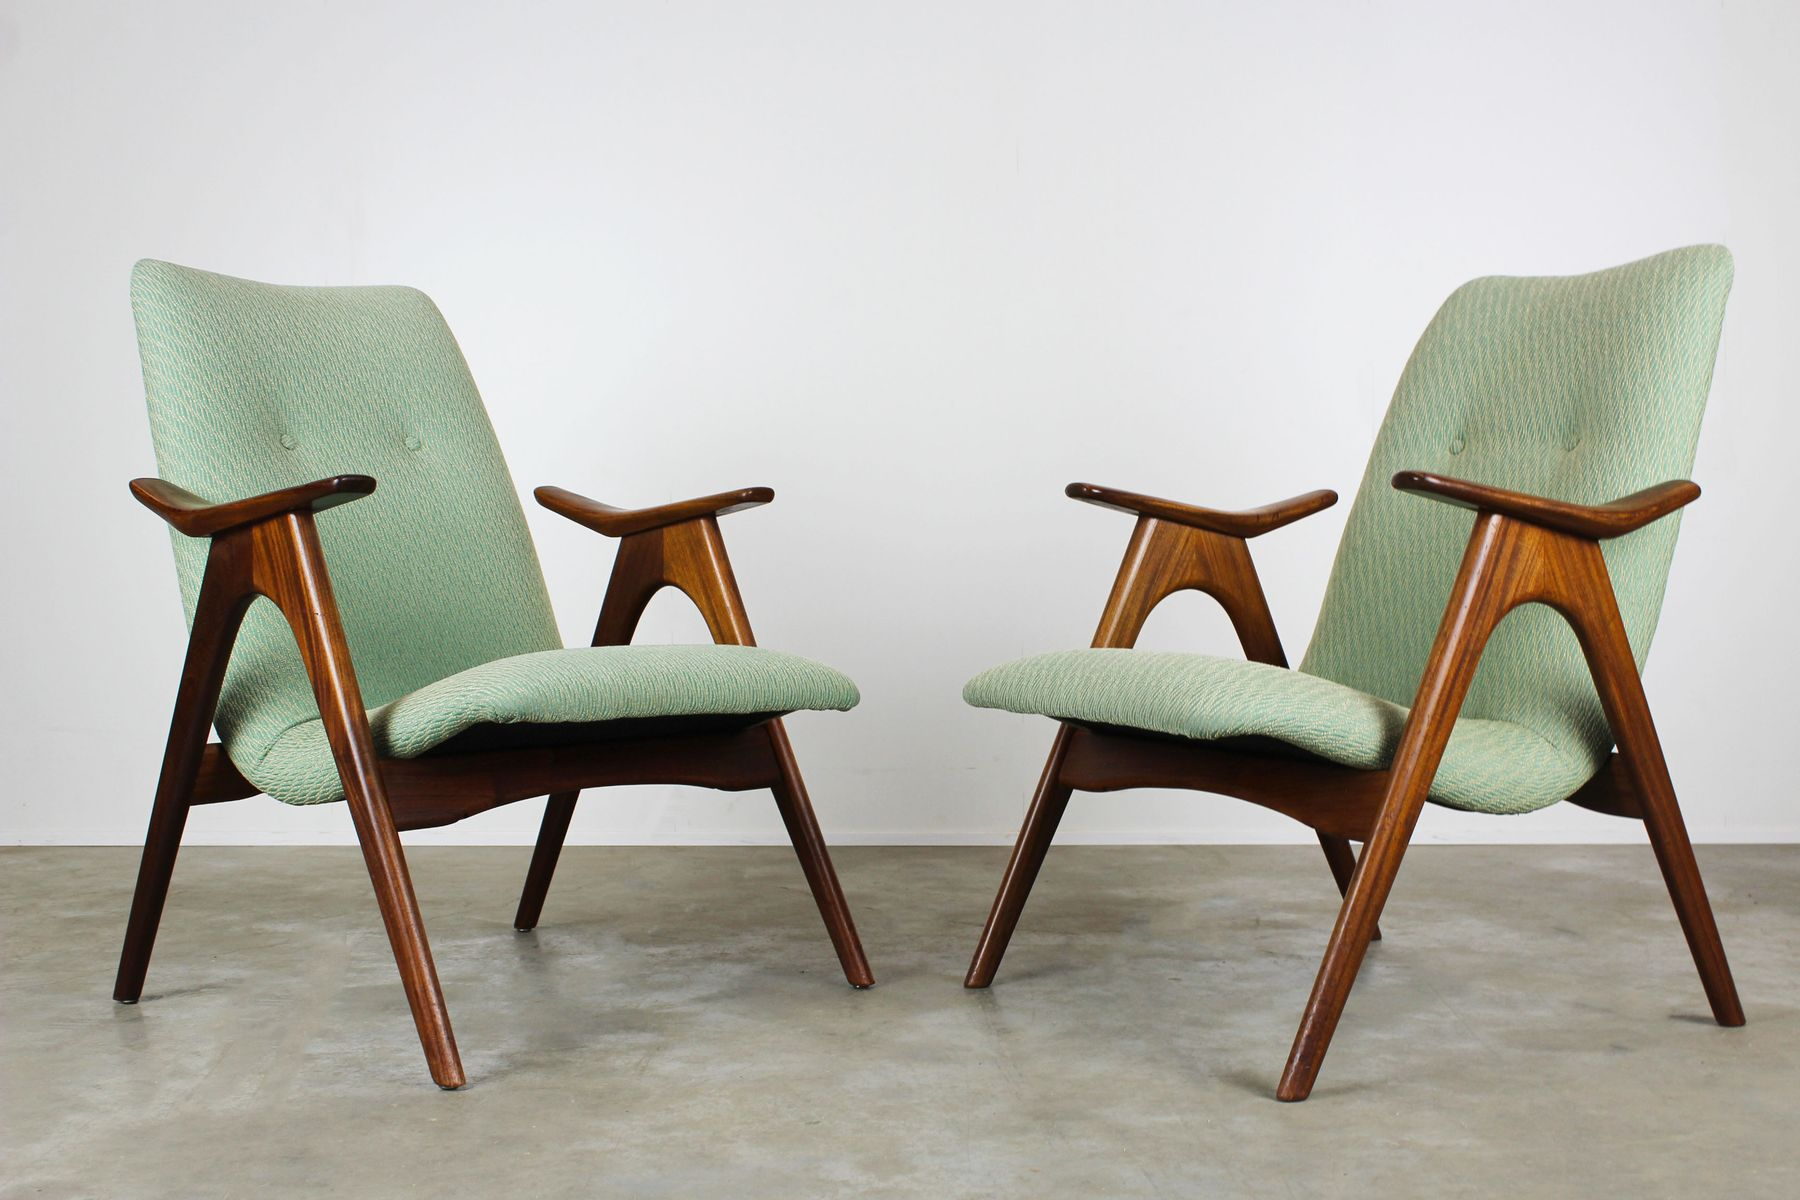 Vintage Green Chairs In Teak By Louis Van Teeffelen For Webe, 1960s, Set Of  2